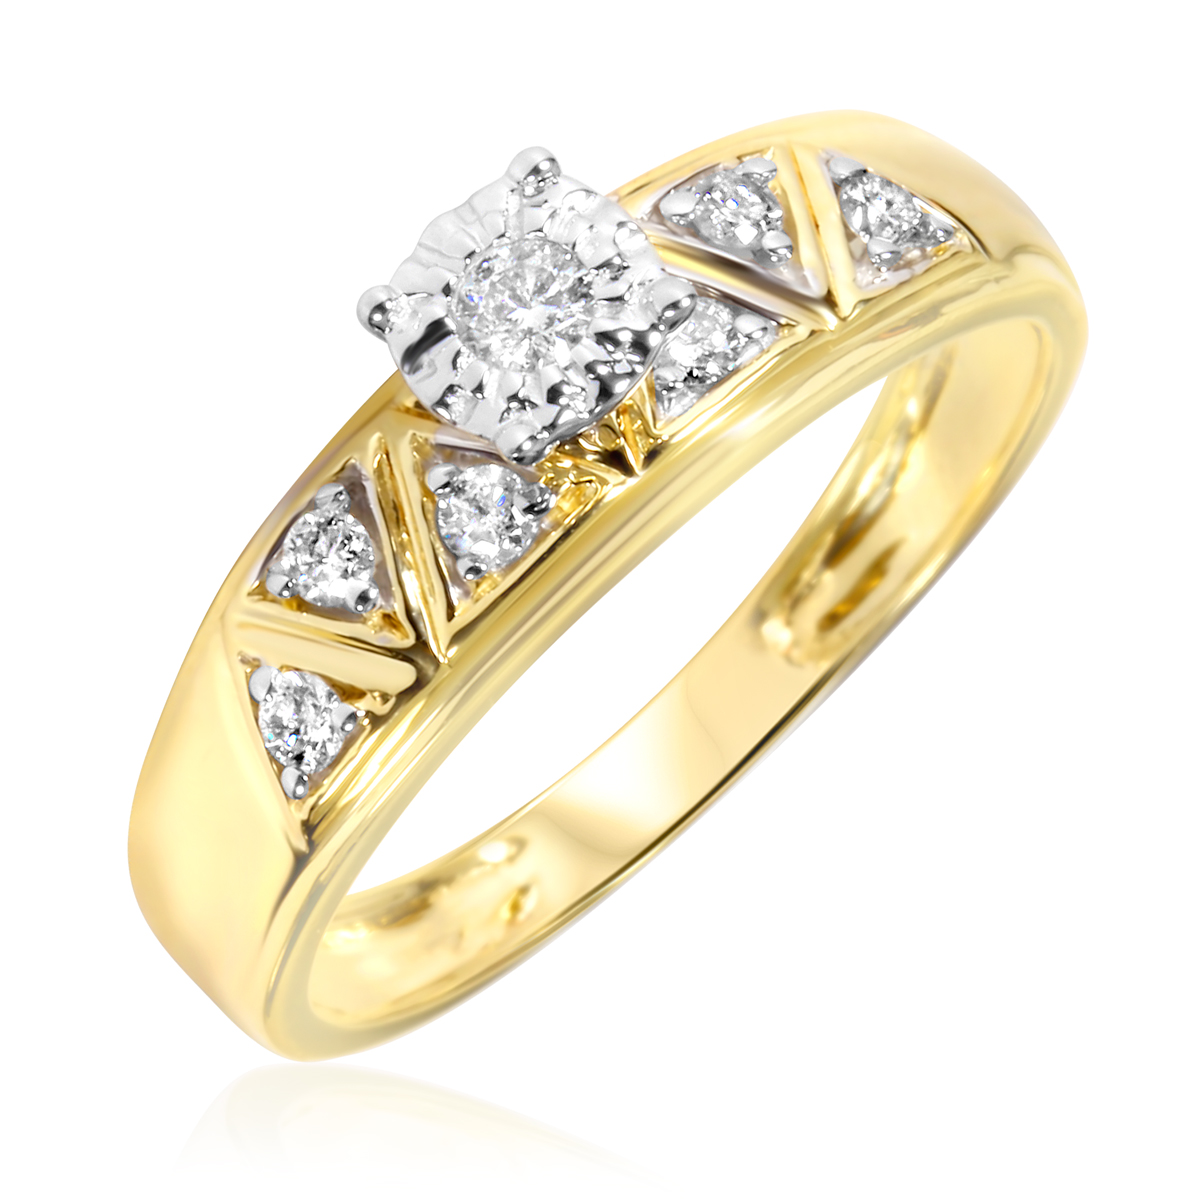 1 5 Carat T W Diamond Women s Engagement Ring 14K Yellow Gold